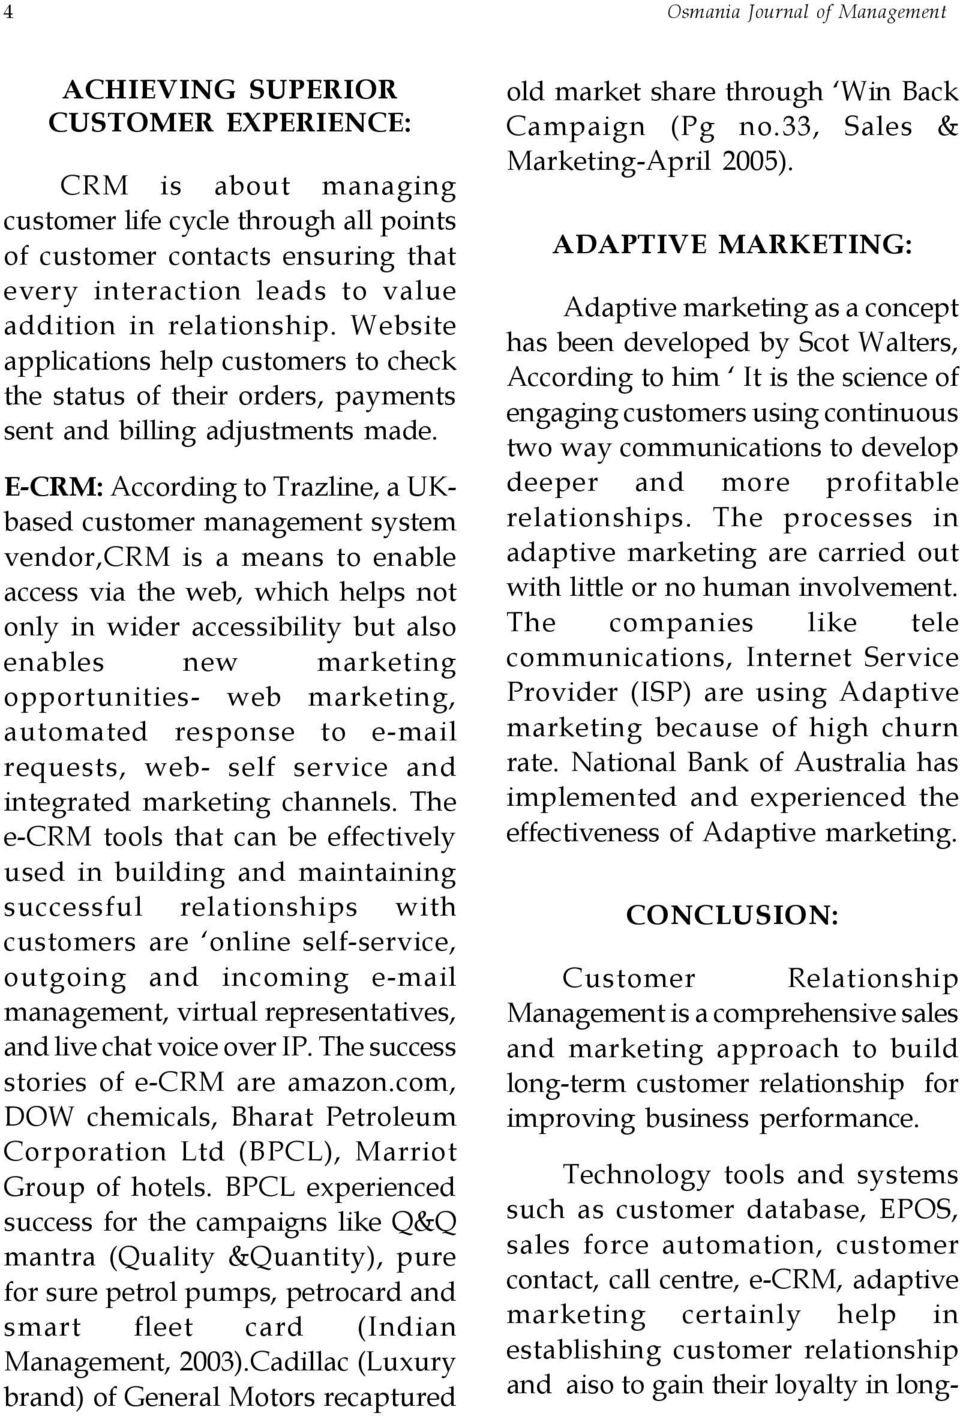 E-CRM: According to Trazline, a UKbased customer management system vendor,crm is a means to enable access via the web, which helps not only in wider accessibility but also enables new marketing